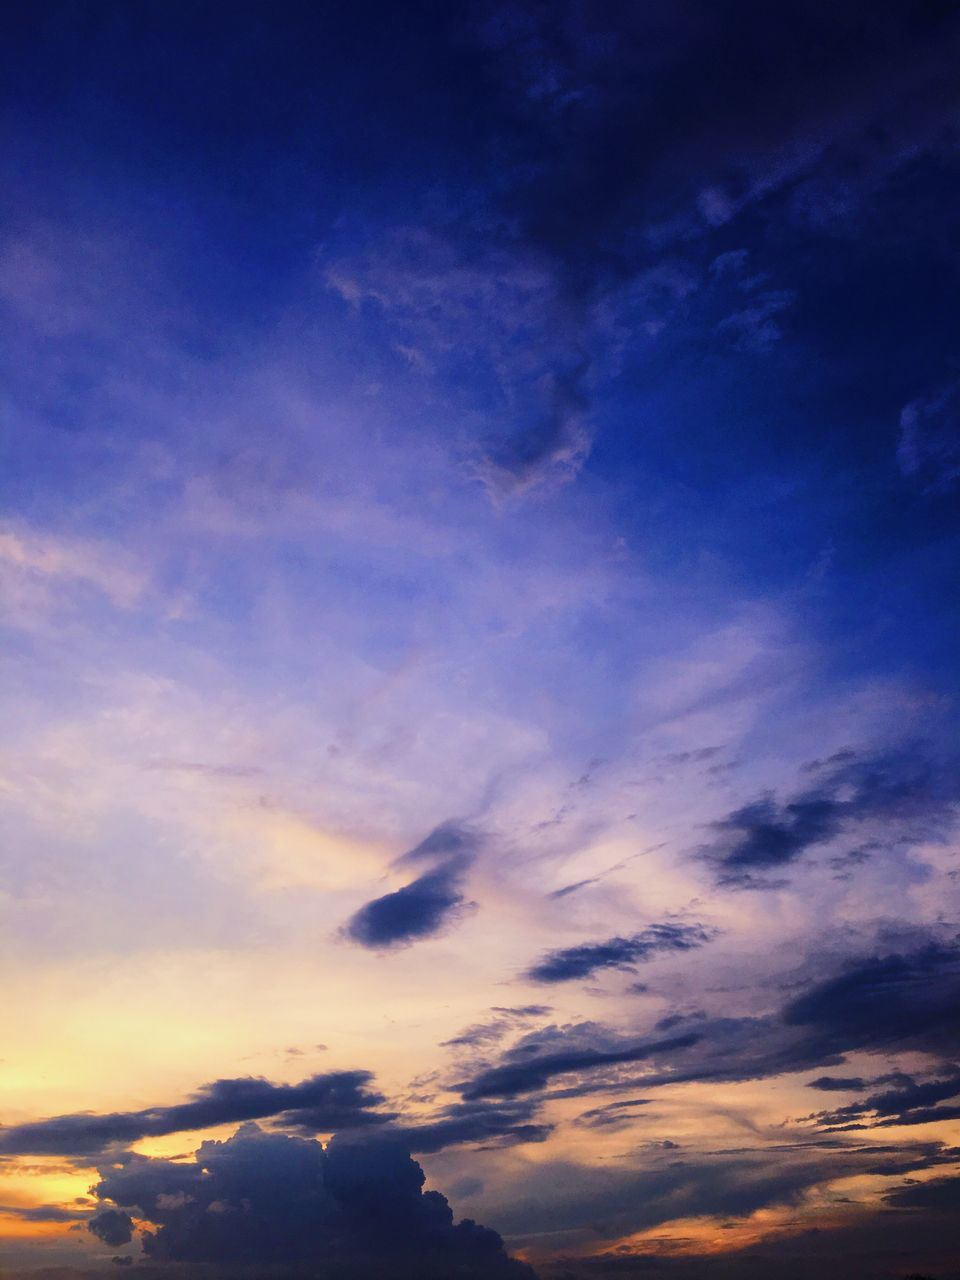 nature, beauty in nature, sky, sunset, scenics, tranquility, tranquil scene, no people, cloud - sky, low angle view, blue, sky only, backgrounds, outdoors, day